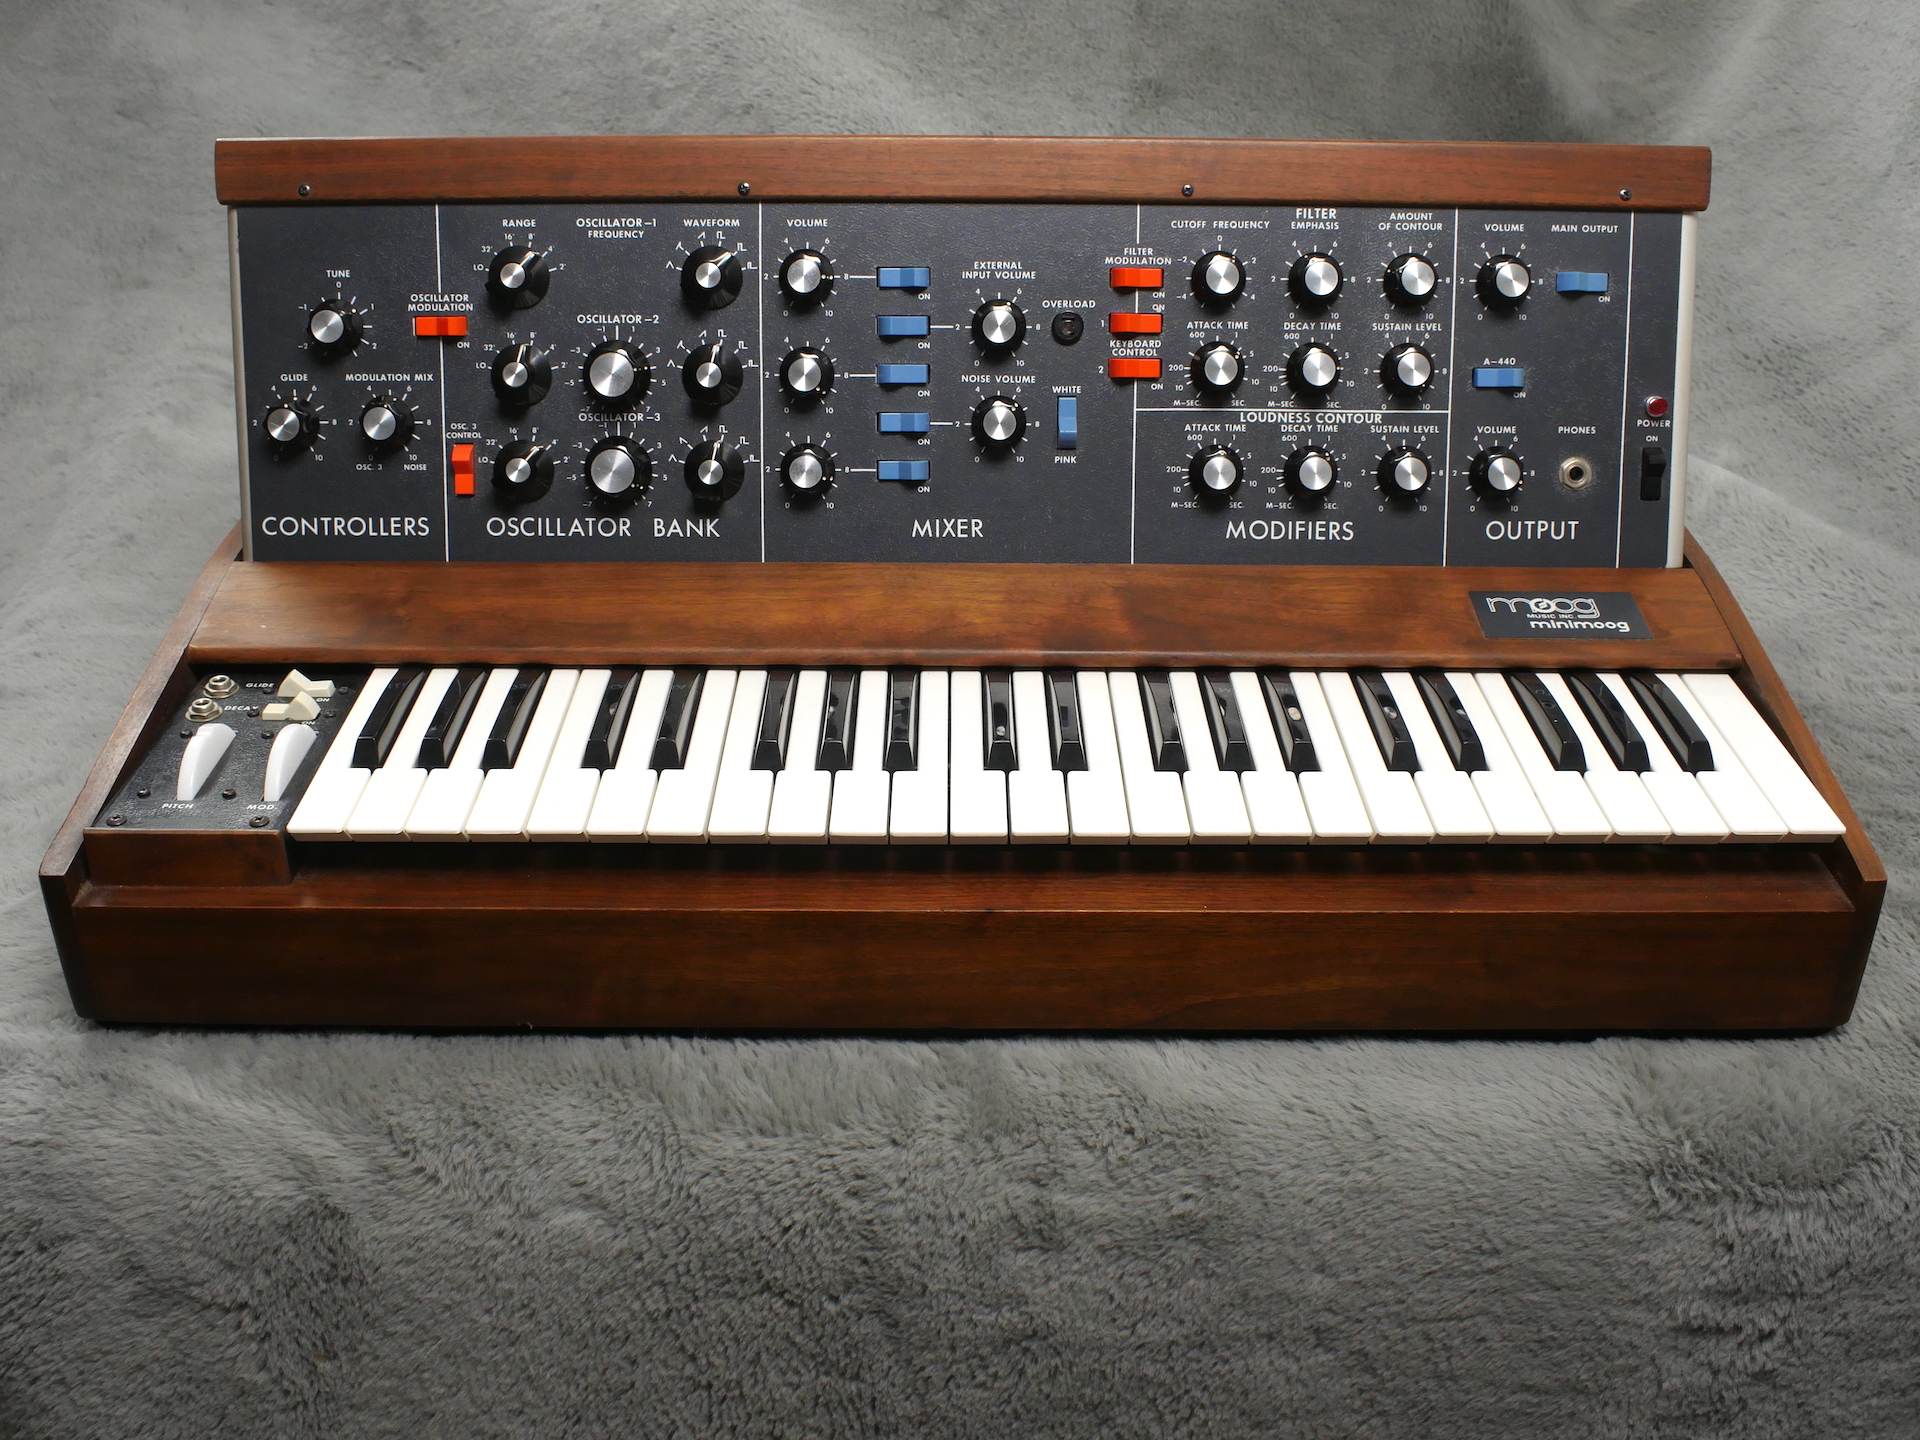 1973 (circa) Moog Mini Moog Model D - Near MINT!